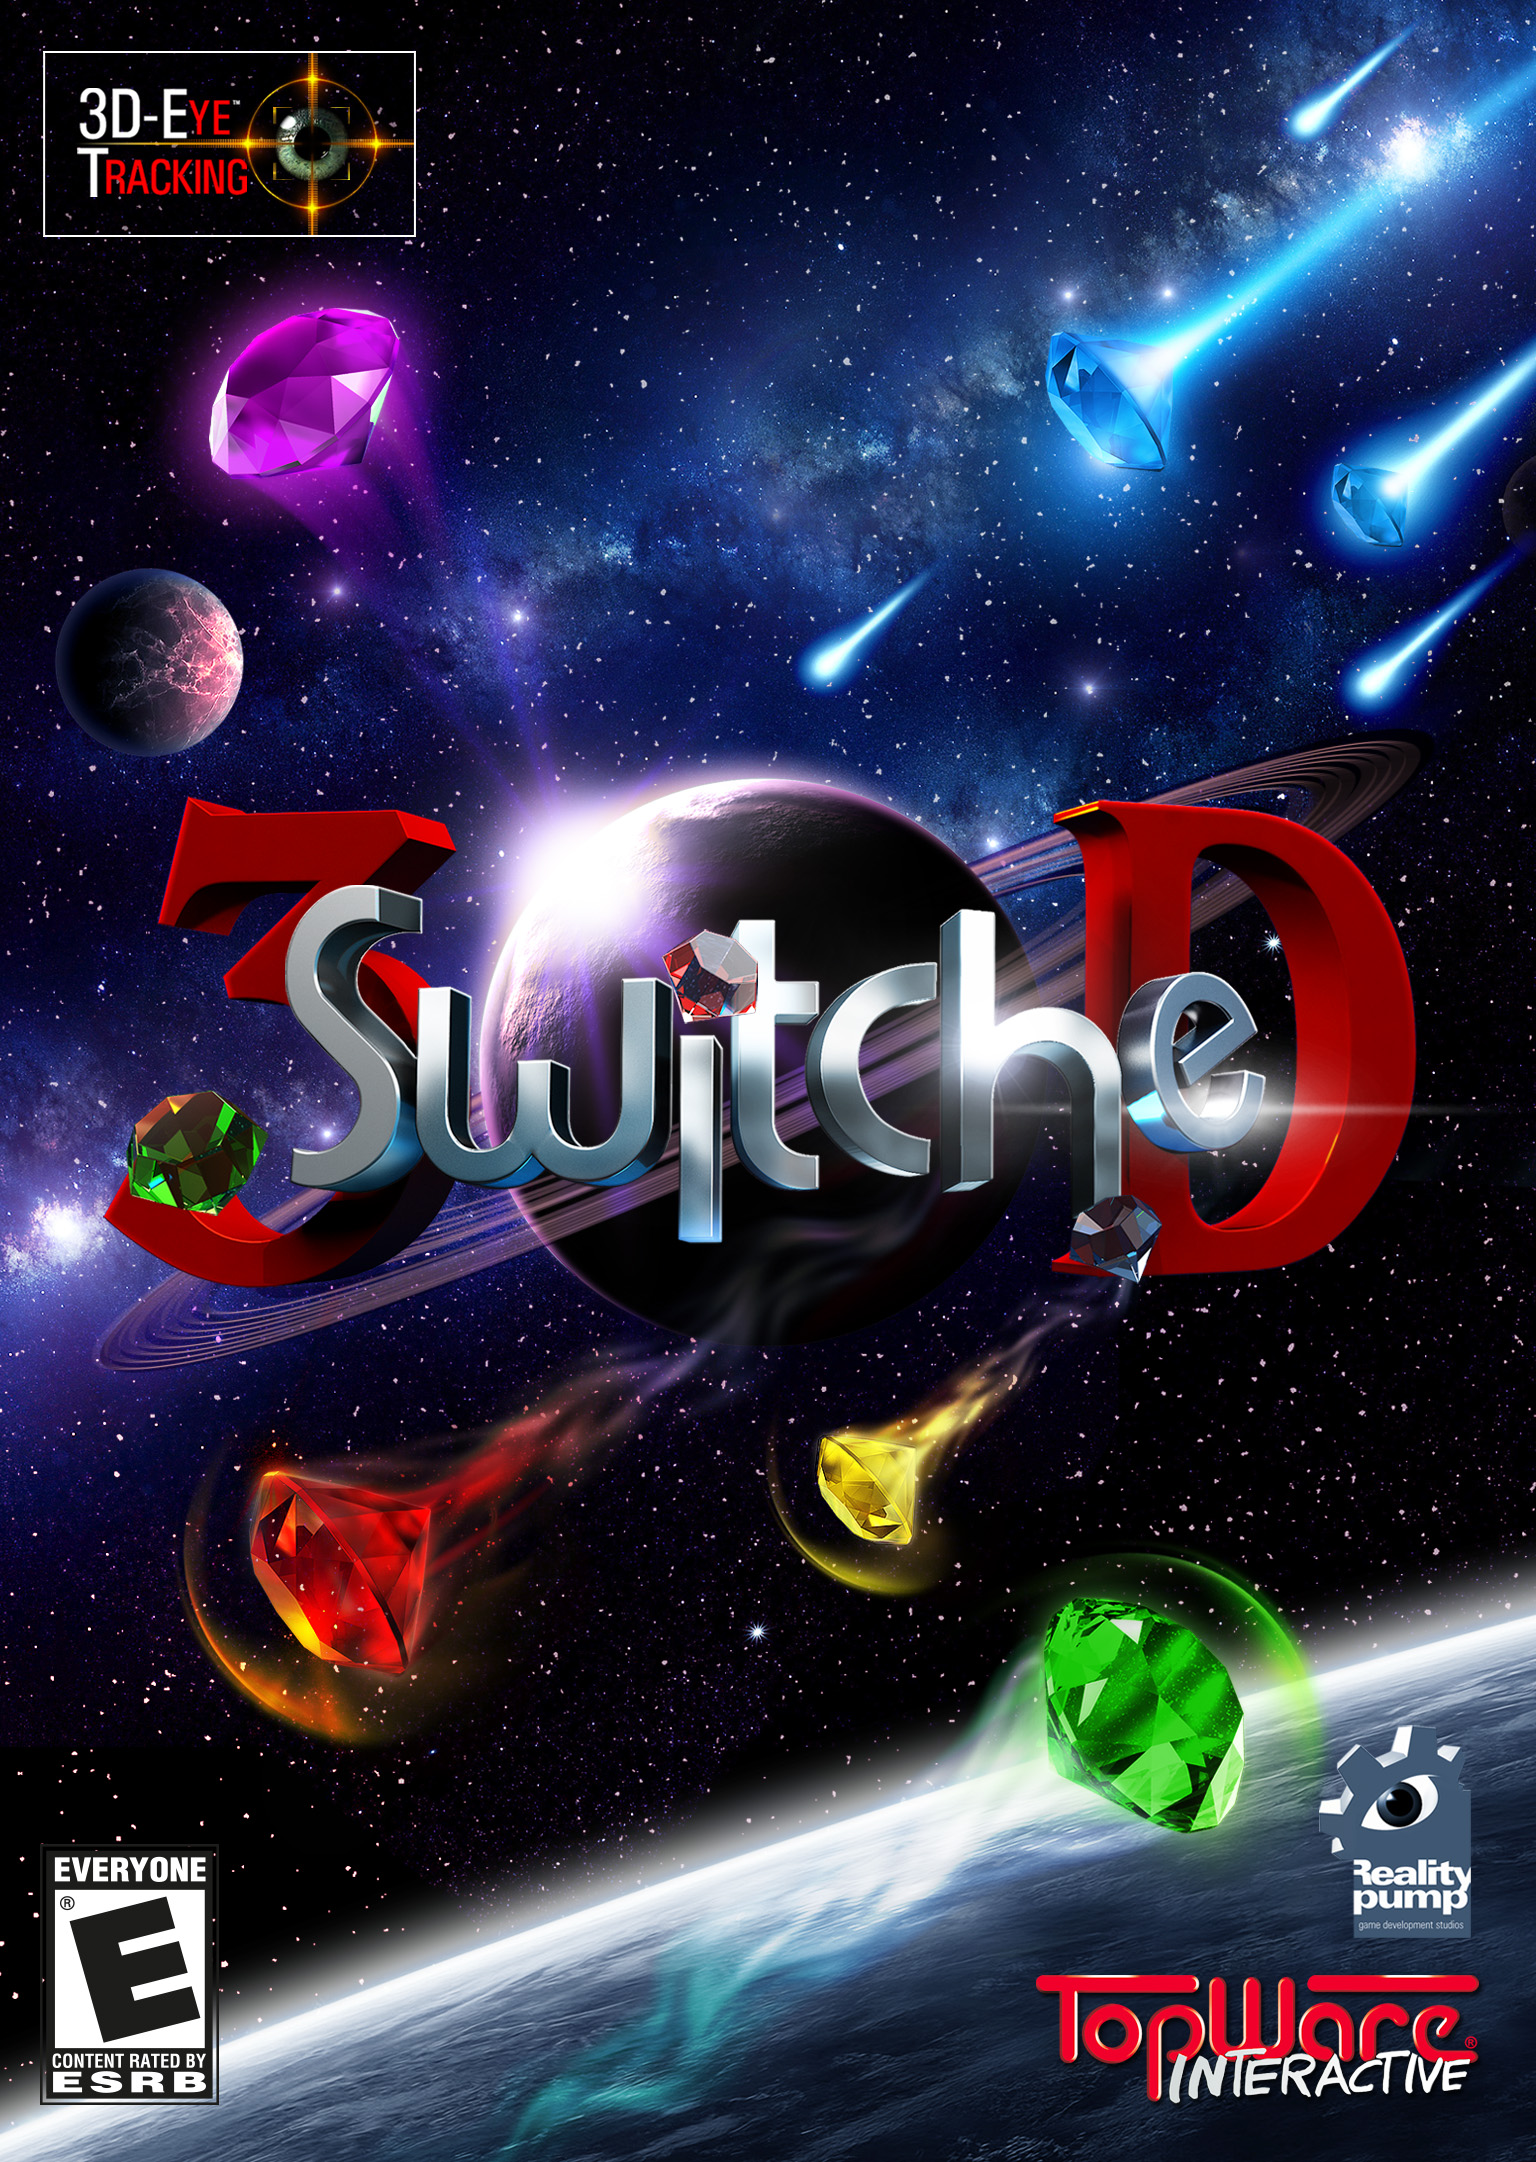 3SwitcheD [Download] - Bejeweled Pumps